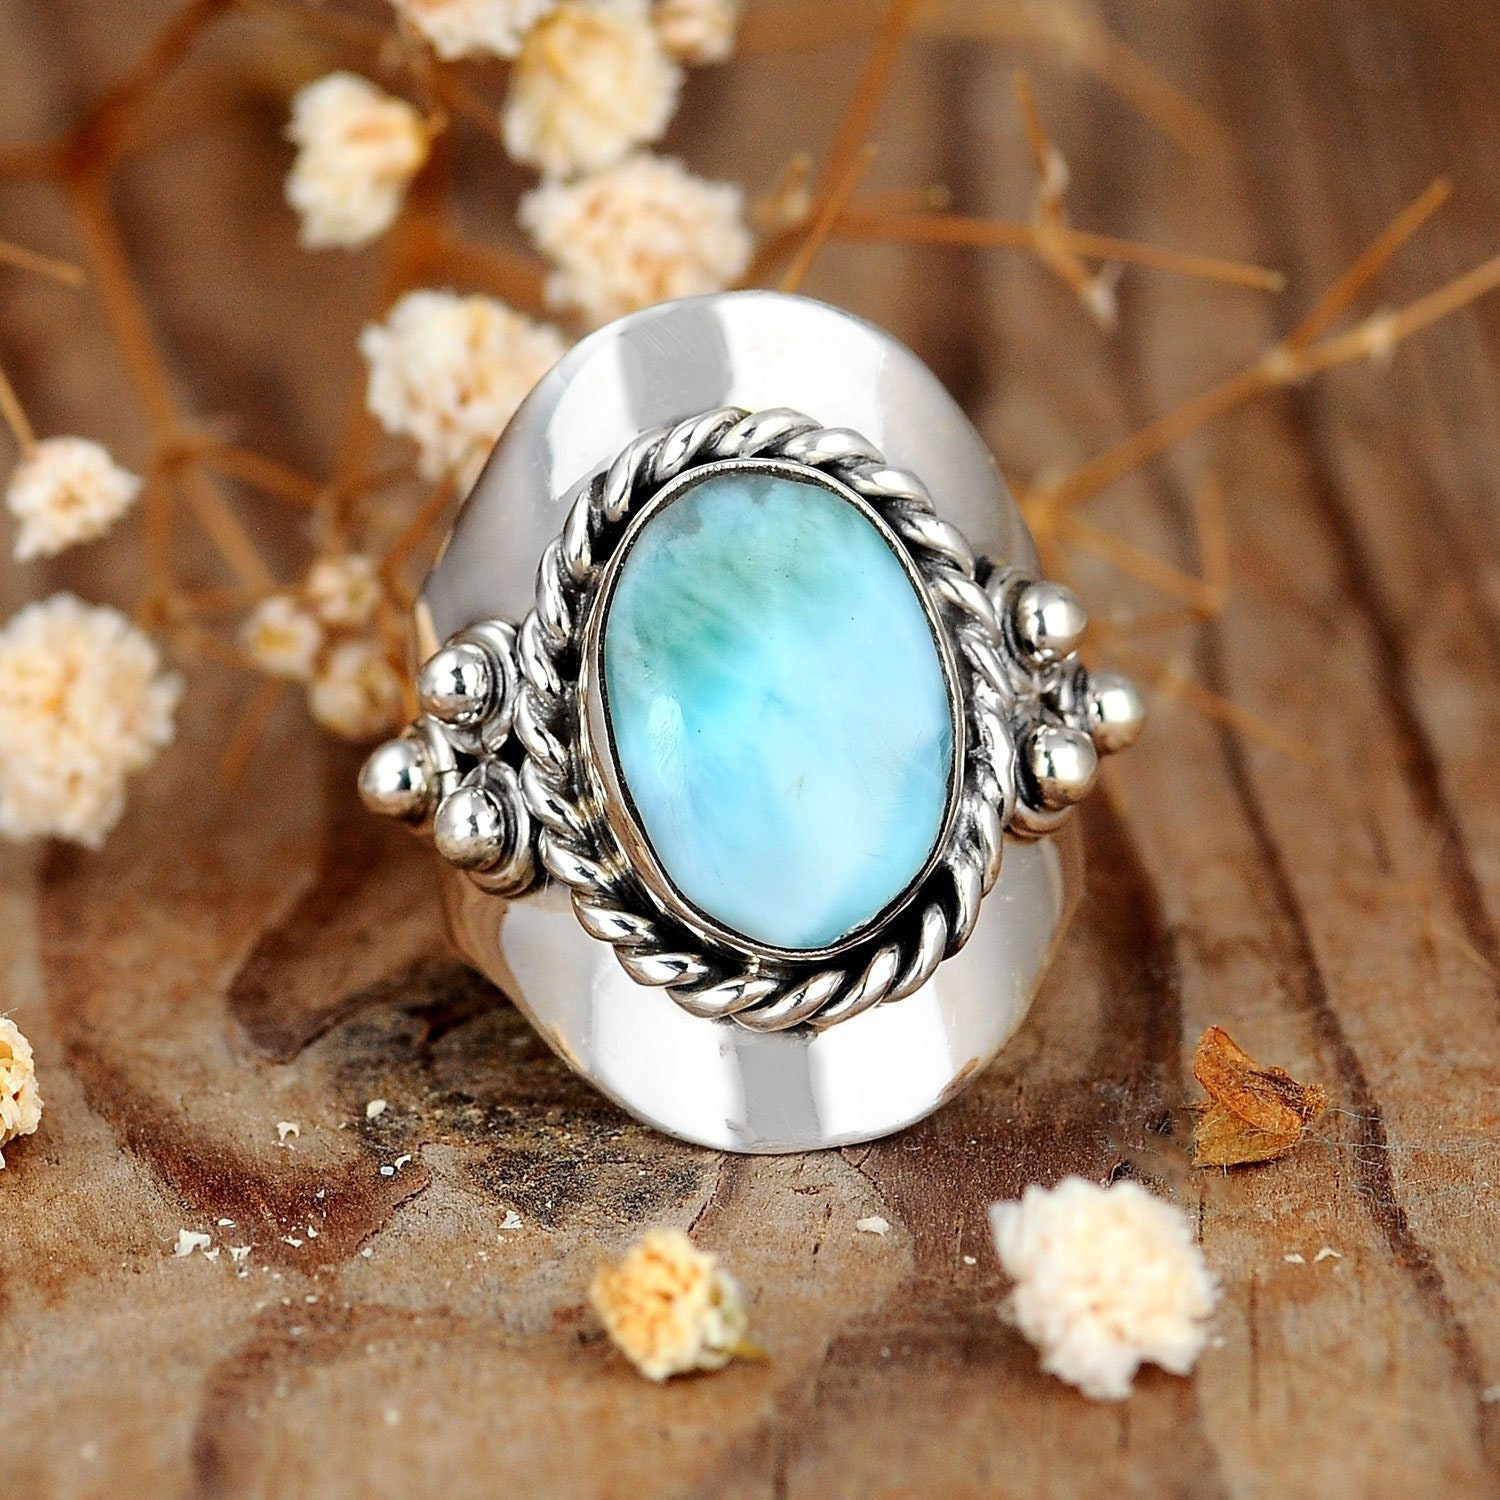 Natural Stone Handmade Jewelry Adjustable Women Ring Sterling Silver Ring,Leaf Wrap Open Ring,Sterling Silver Statement Ring Larimar Ring